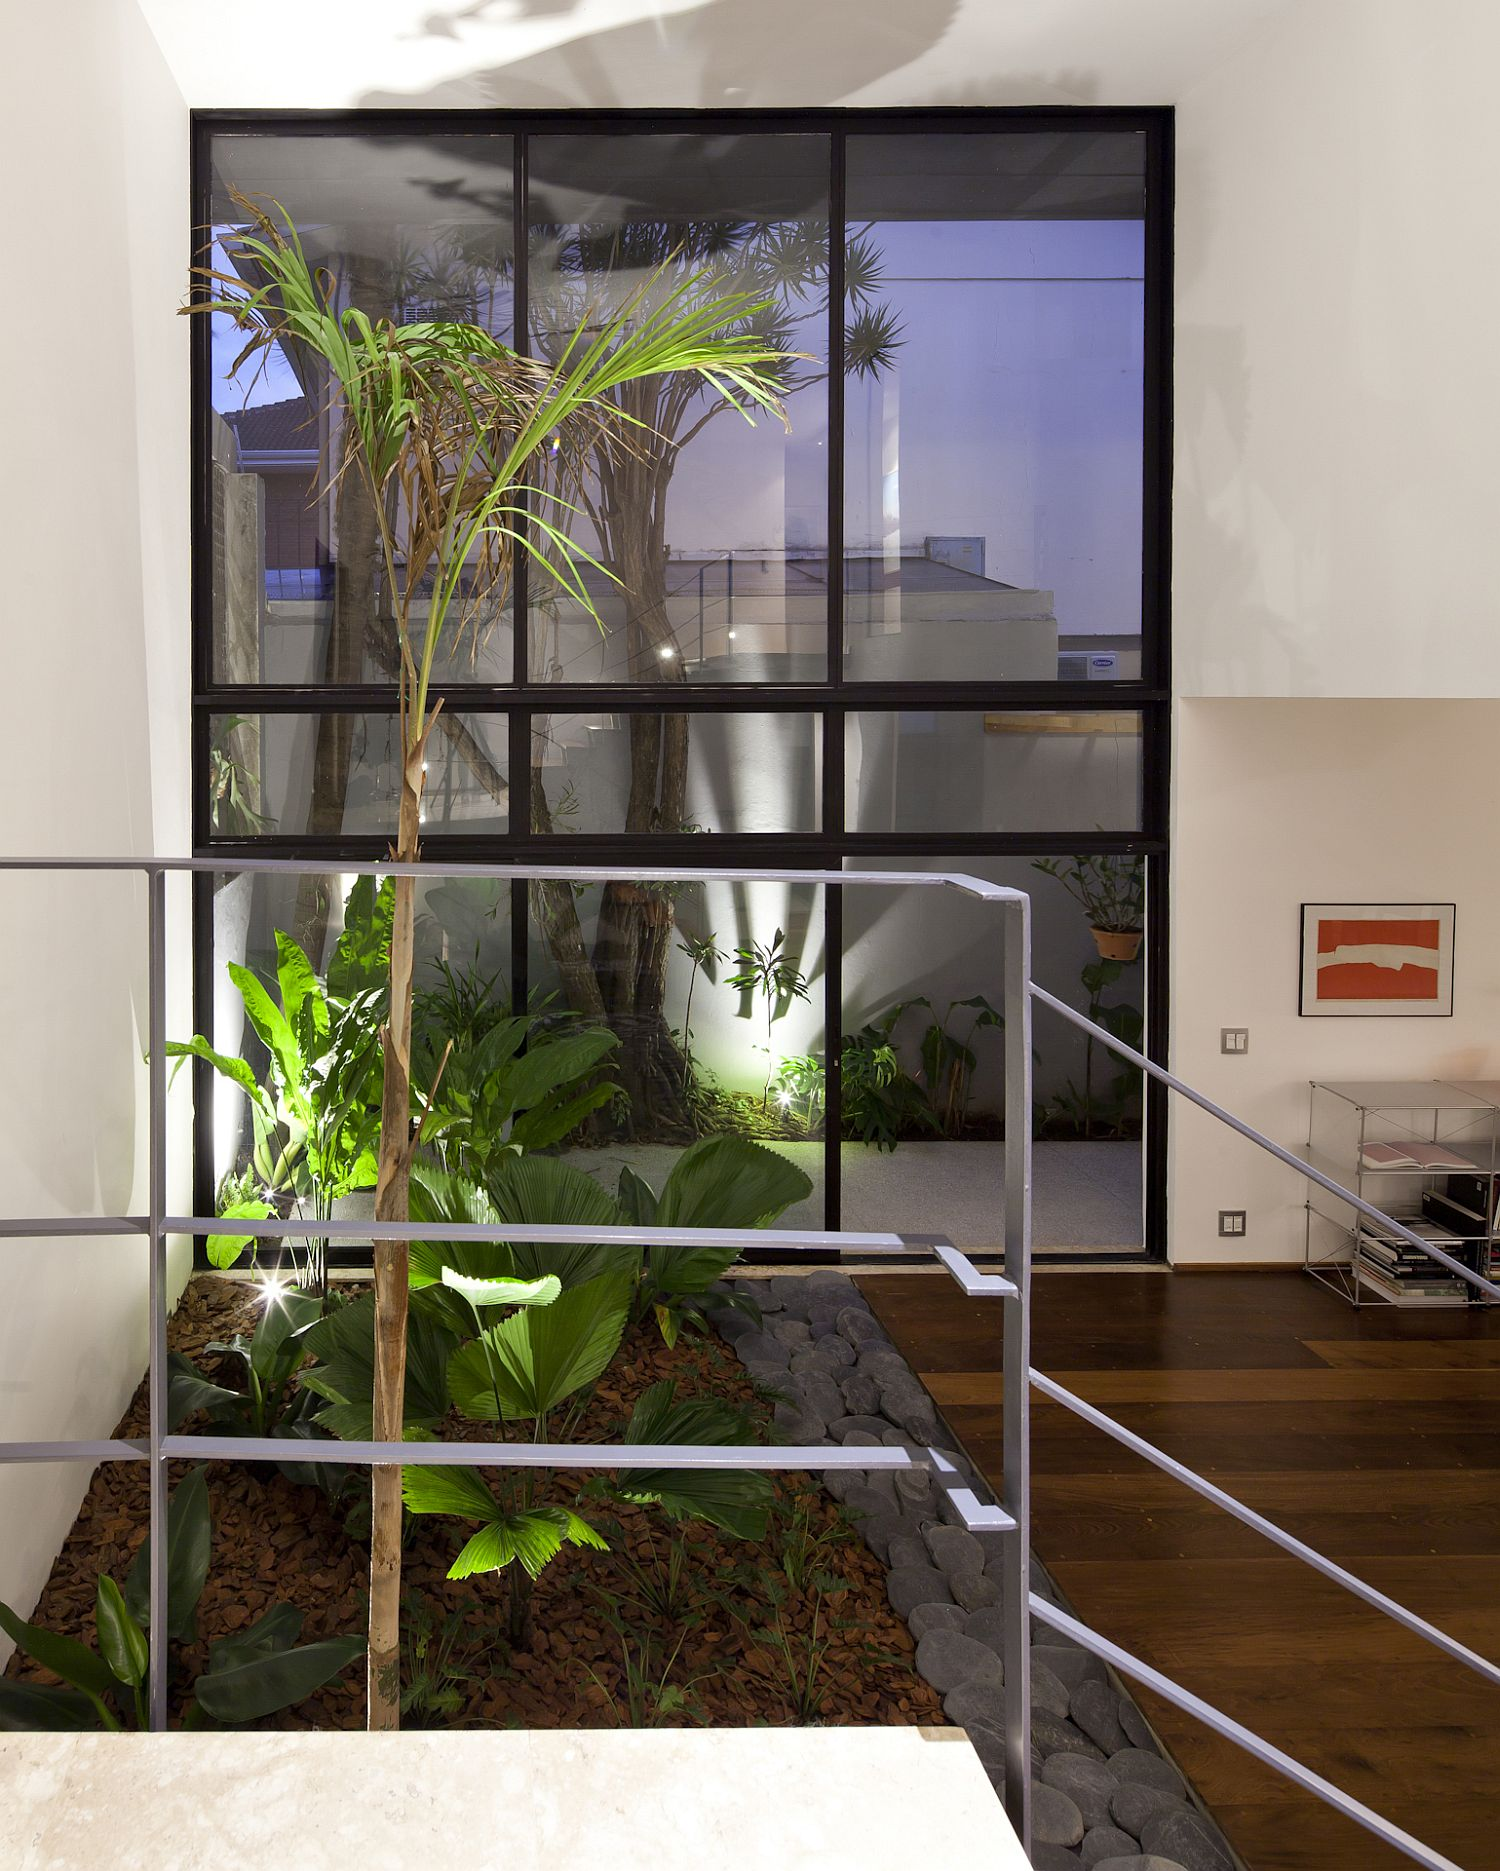 Splashes of greenery inside the Sao Paulo home